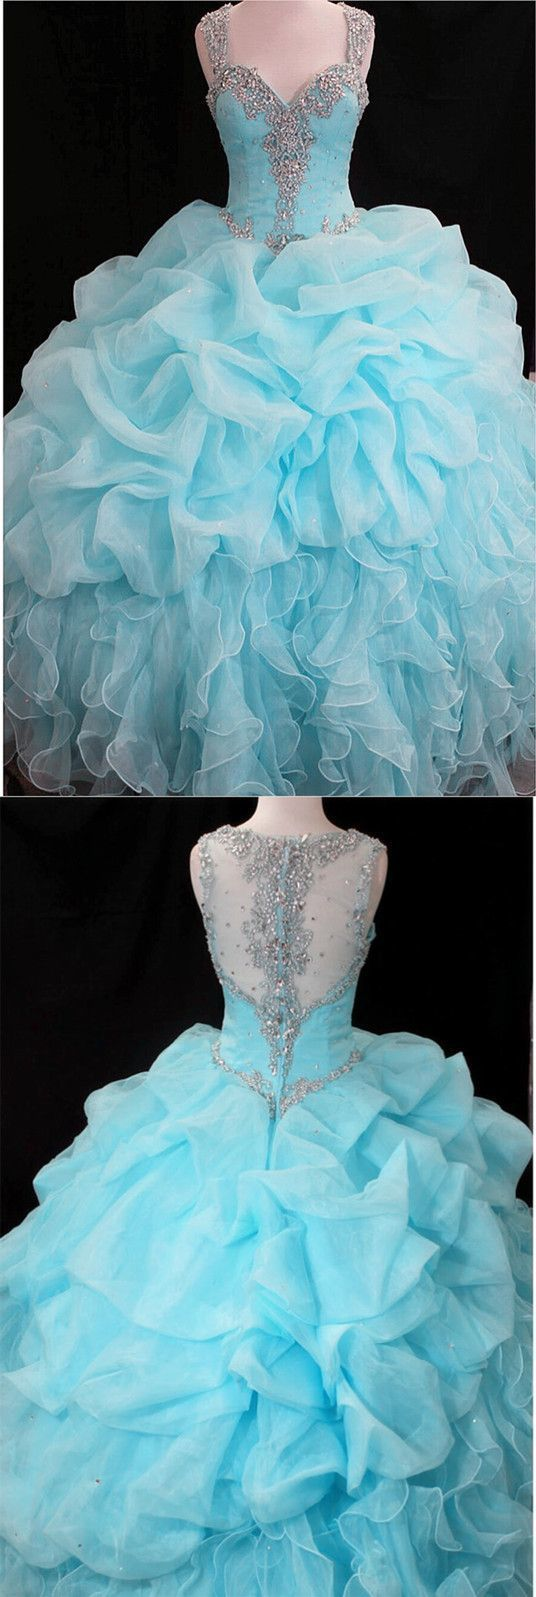 light blue quinceanera dresses,ball gowns quinceanera dresses,sweet 16